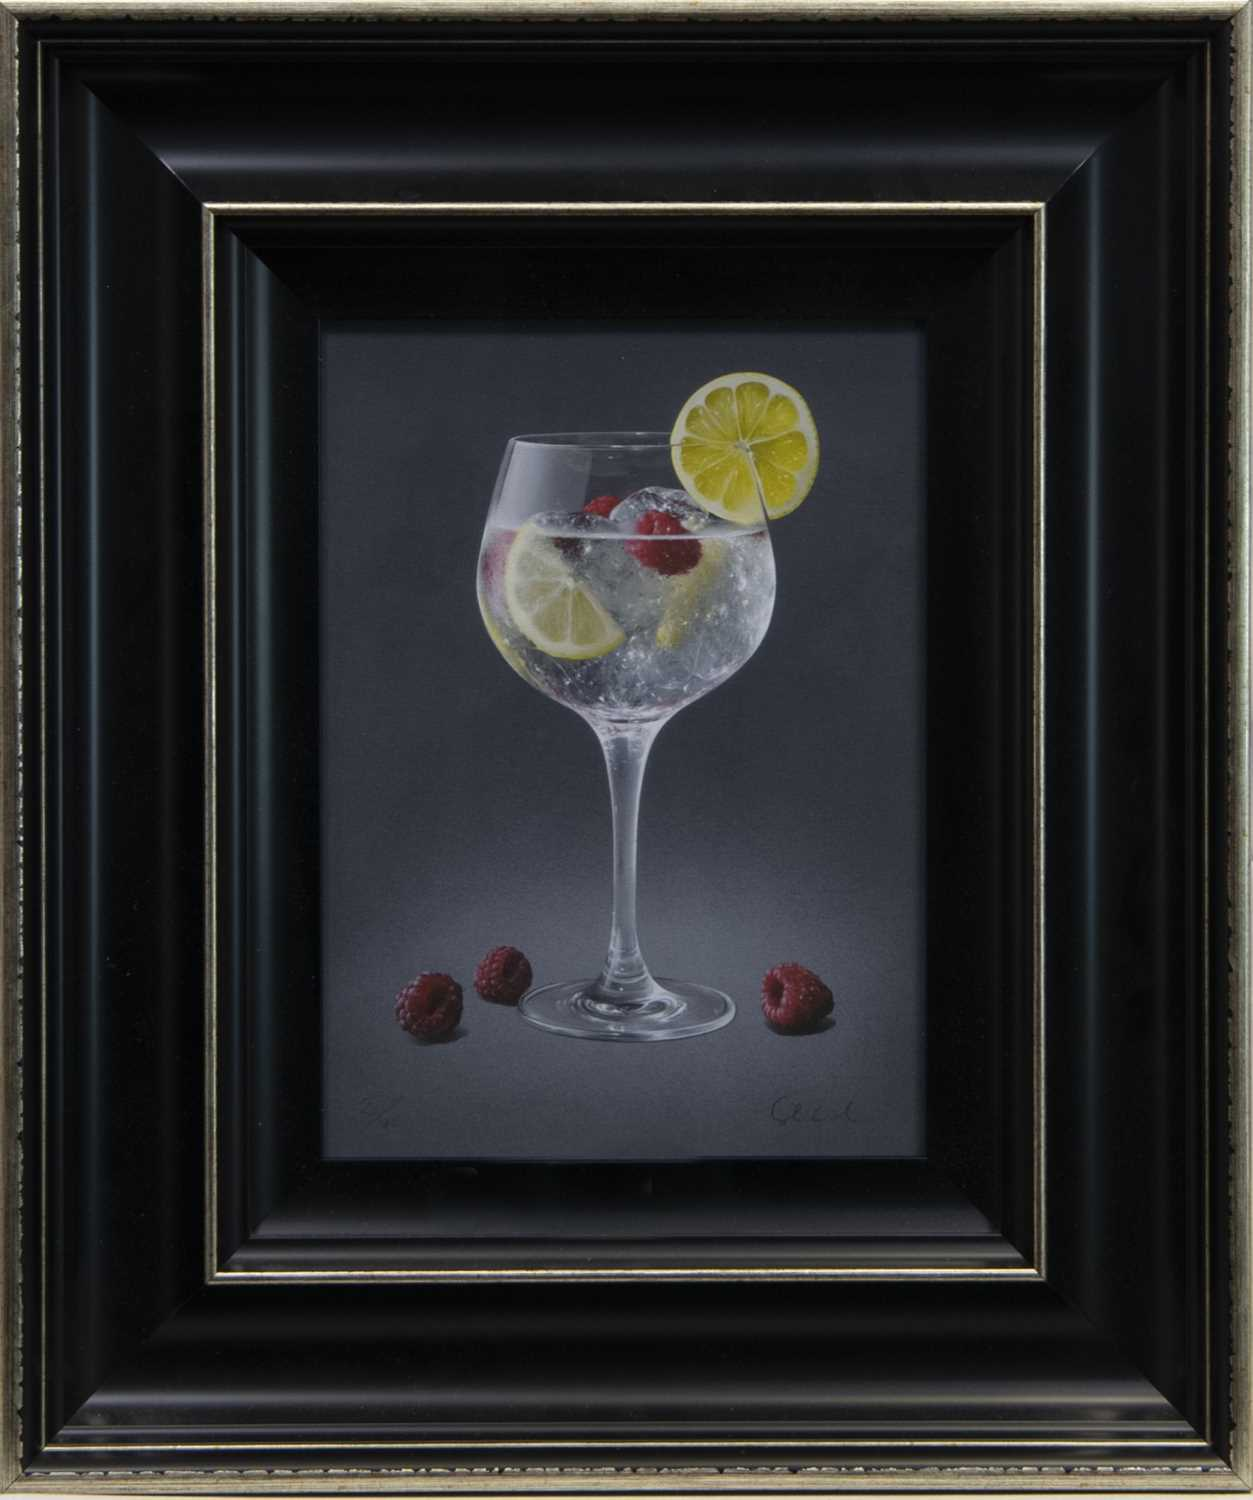 Lot 111 - ICED LEMON AND RASPBERRIES, A GICLEE PRINT BY COLIN WILSON